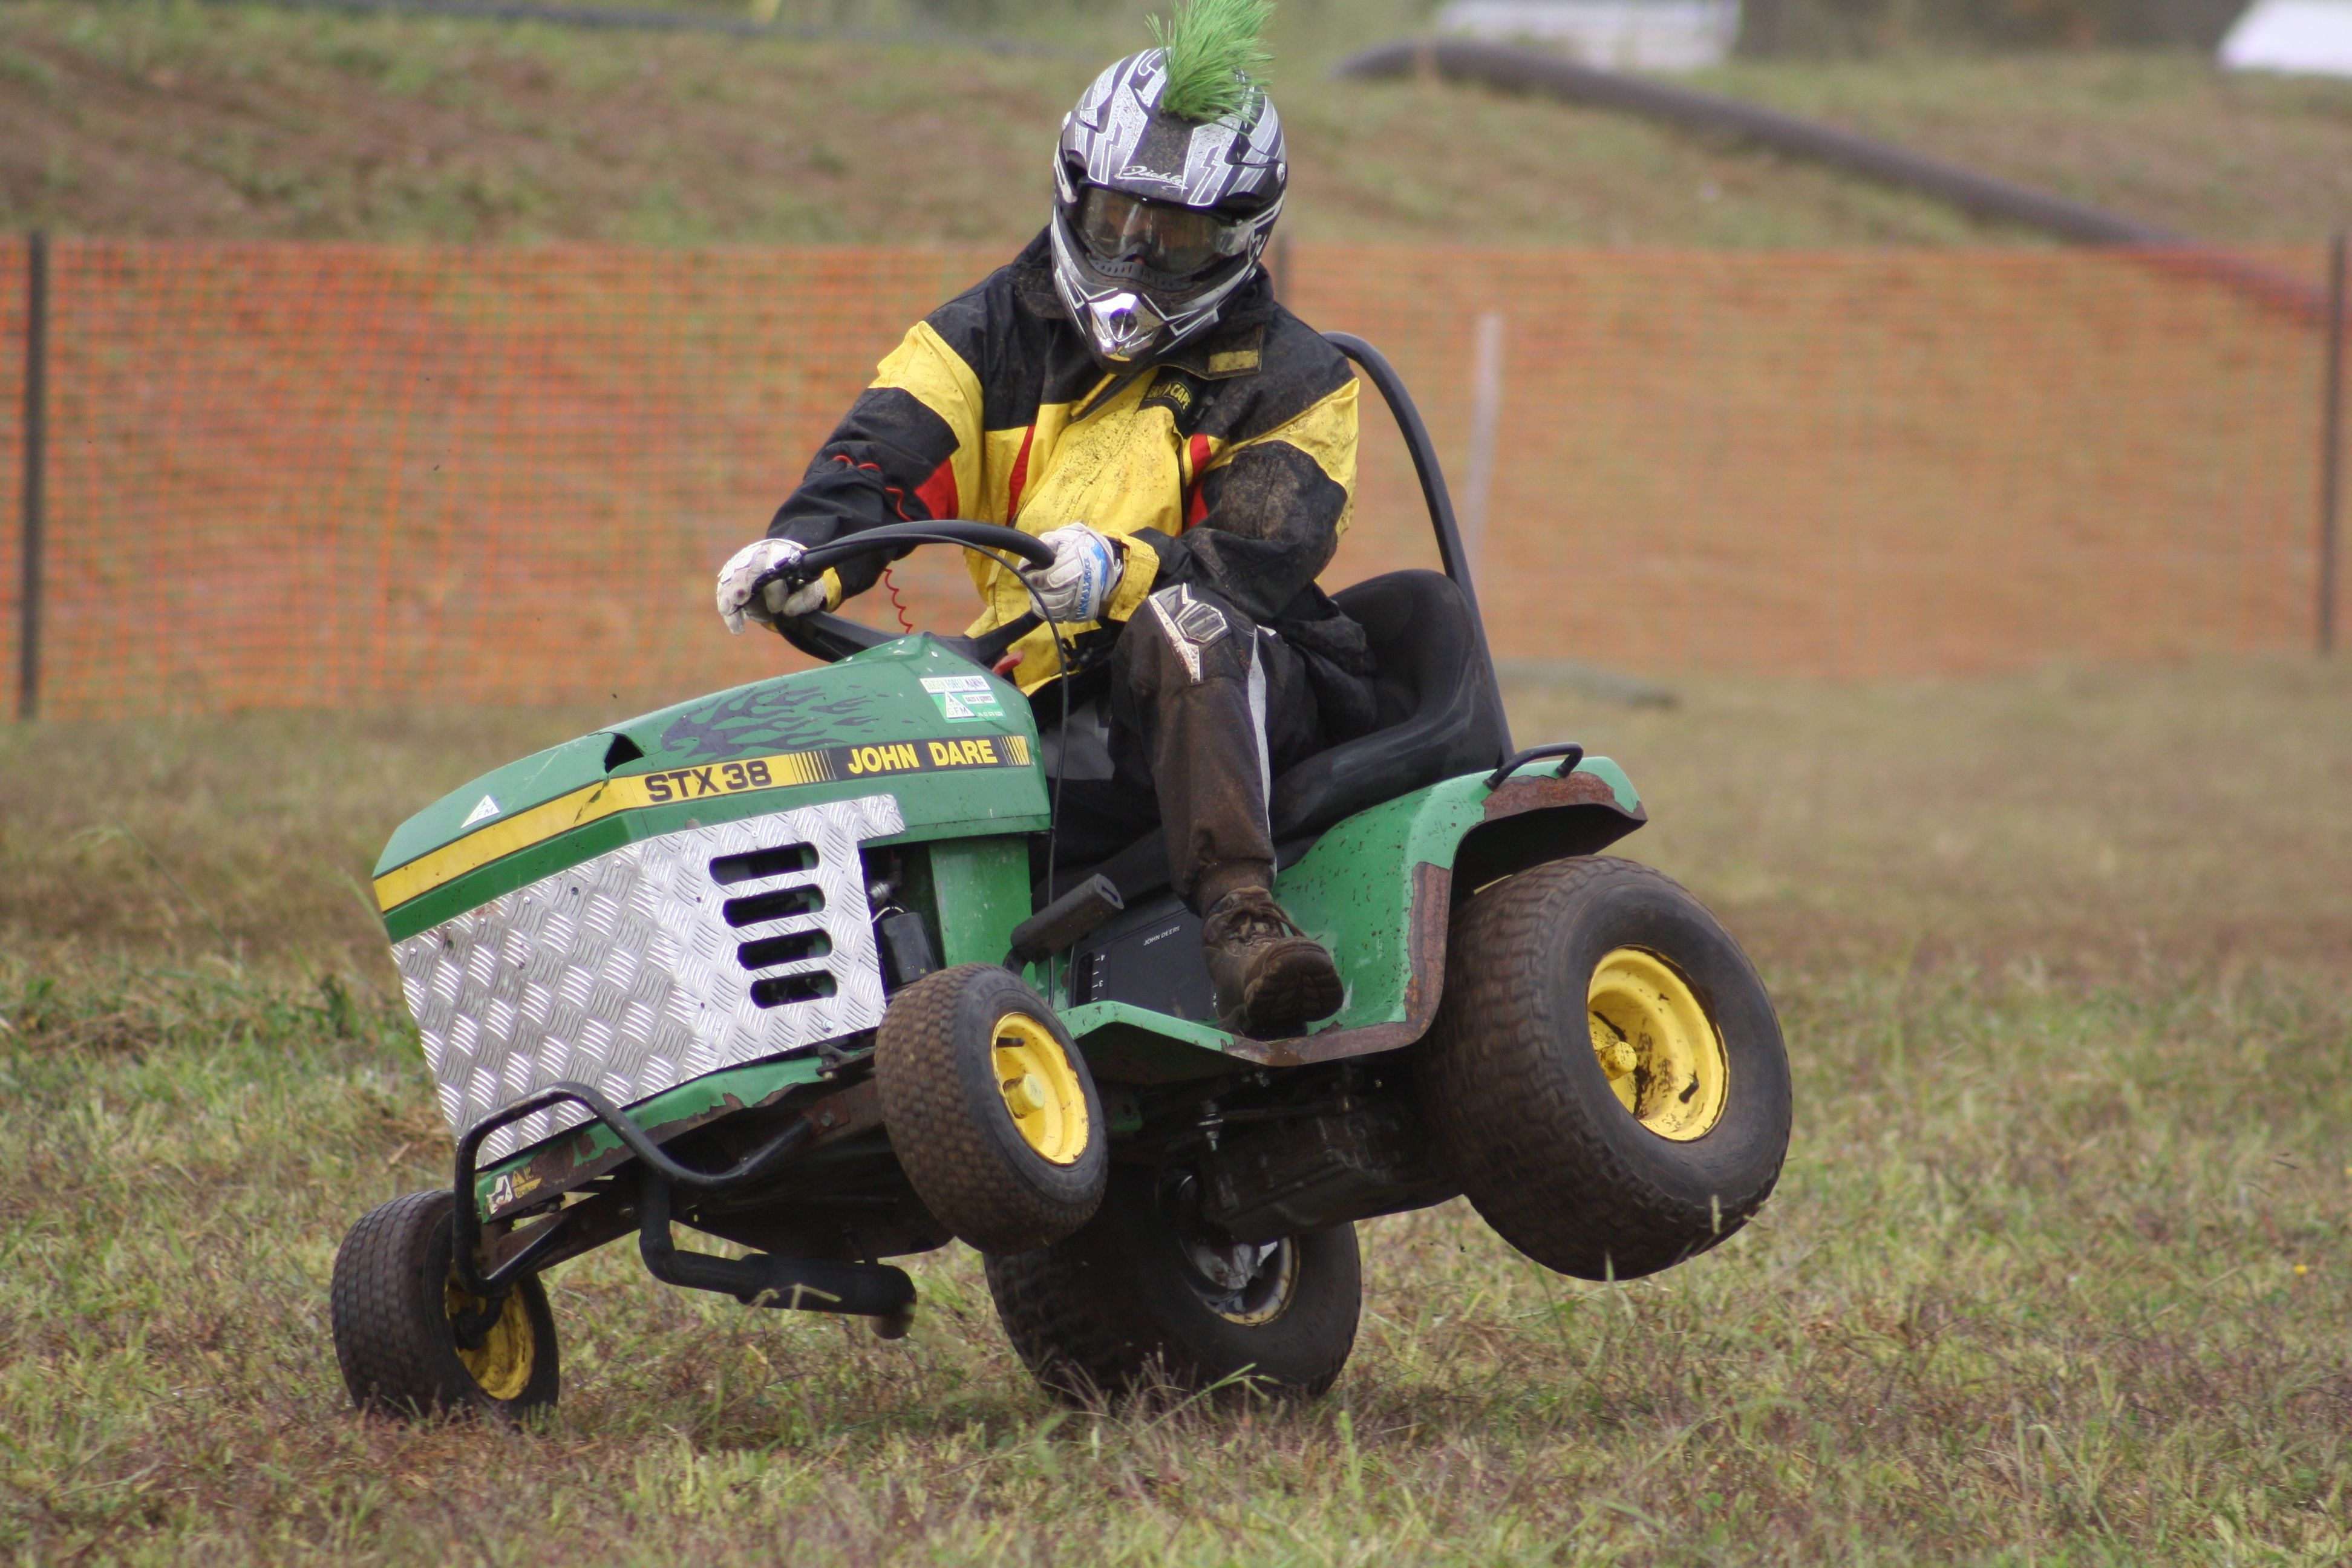 Lawn Mower Racing >> Lawn Mower Racing At Whitianga Nz That S Clever